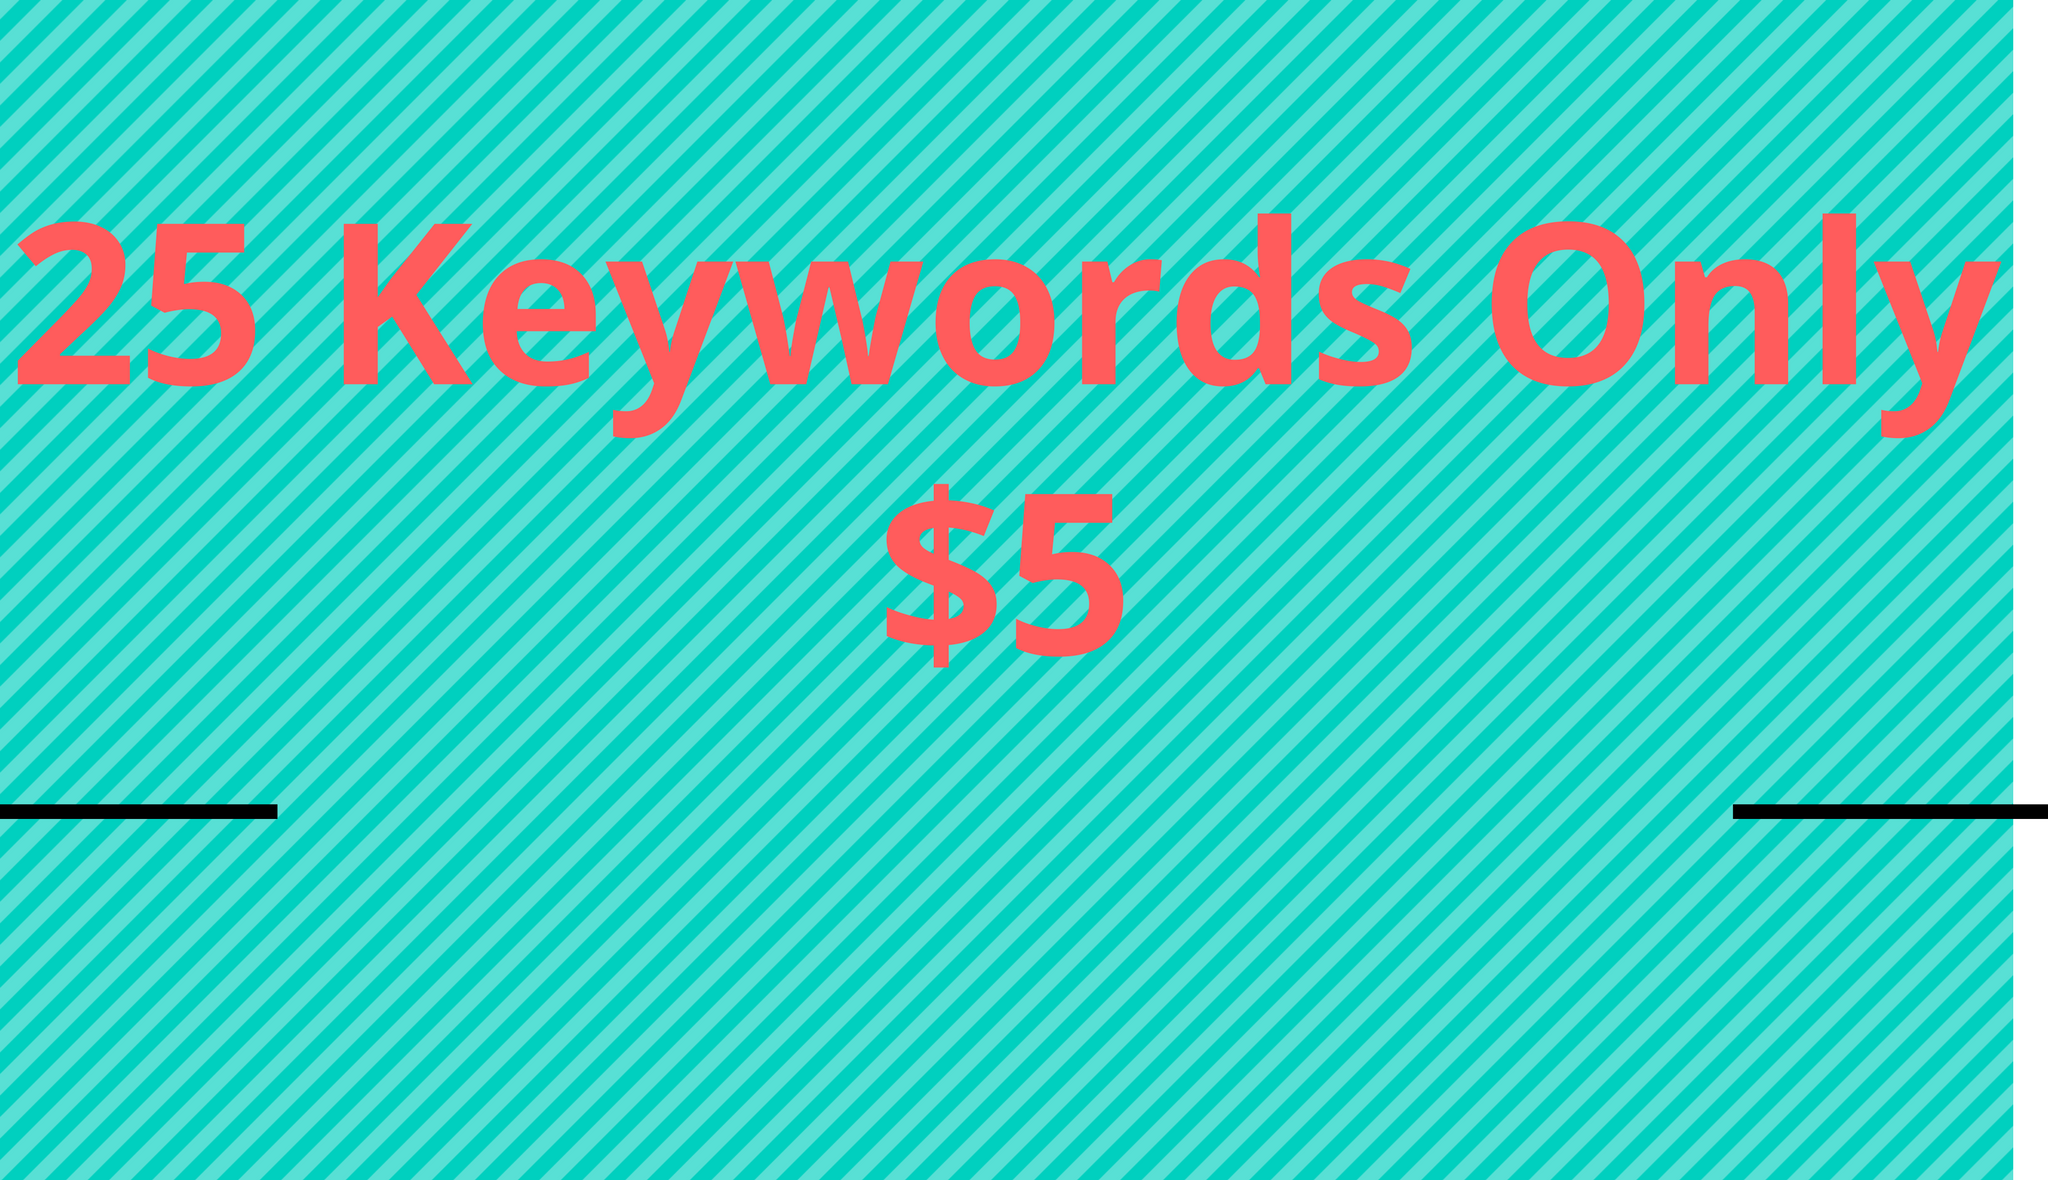 Research 25 High search Volume Keyword For your Site